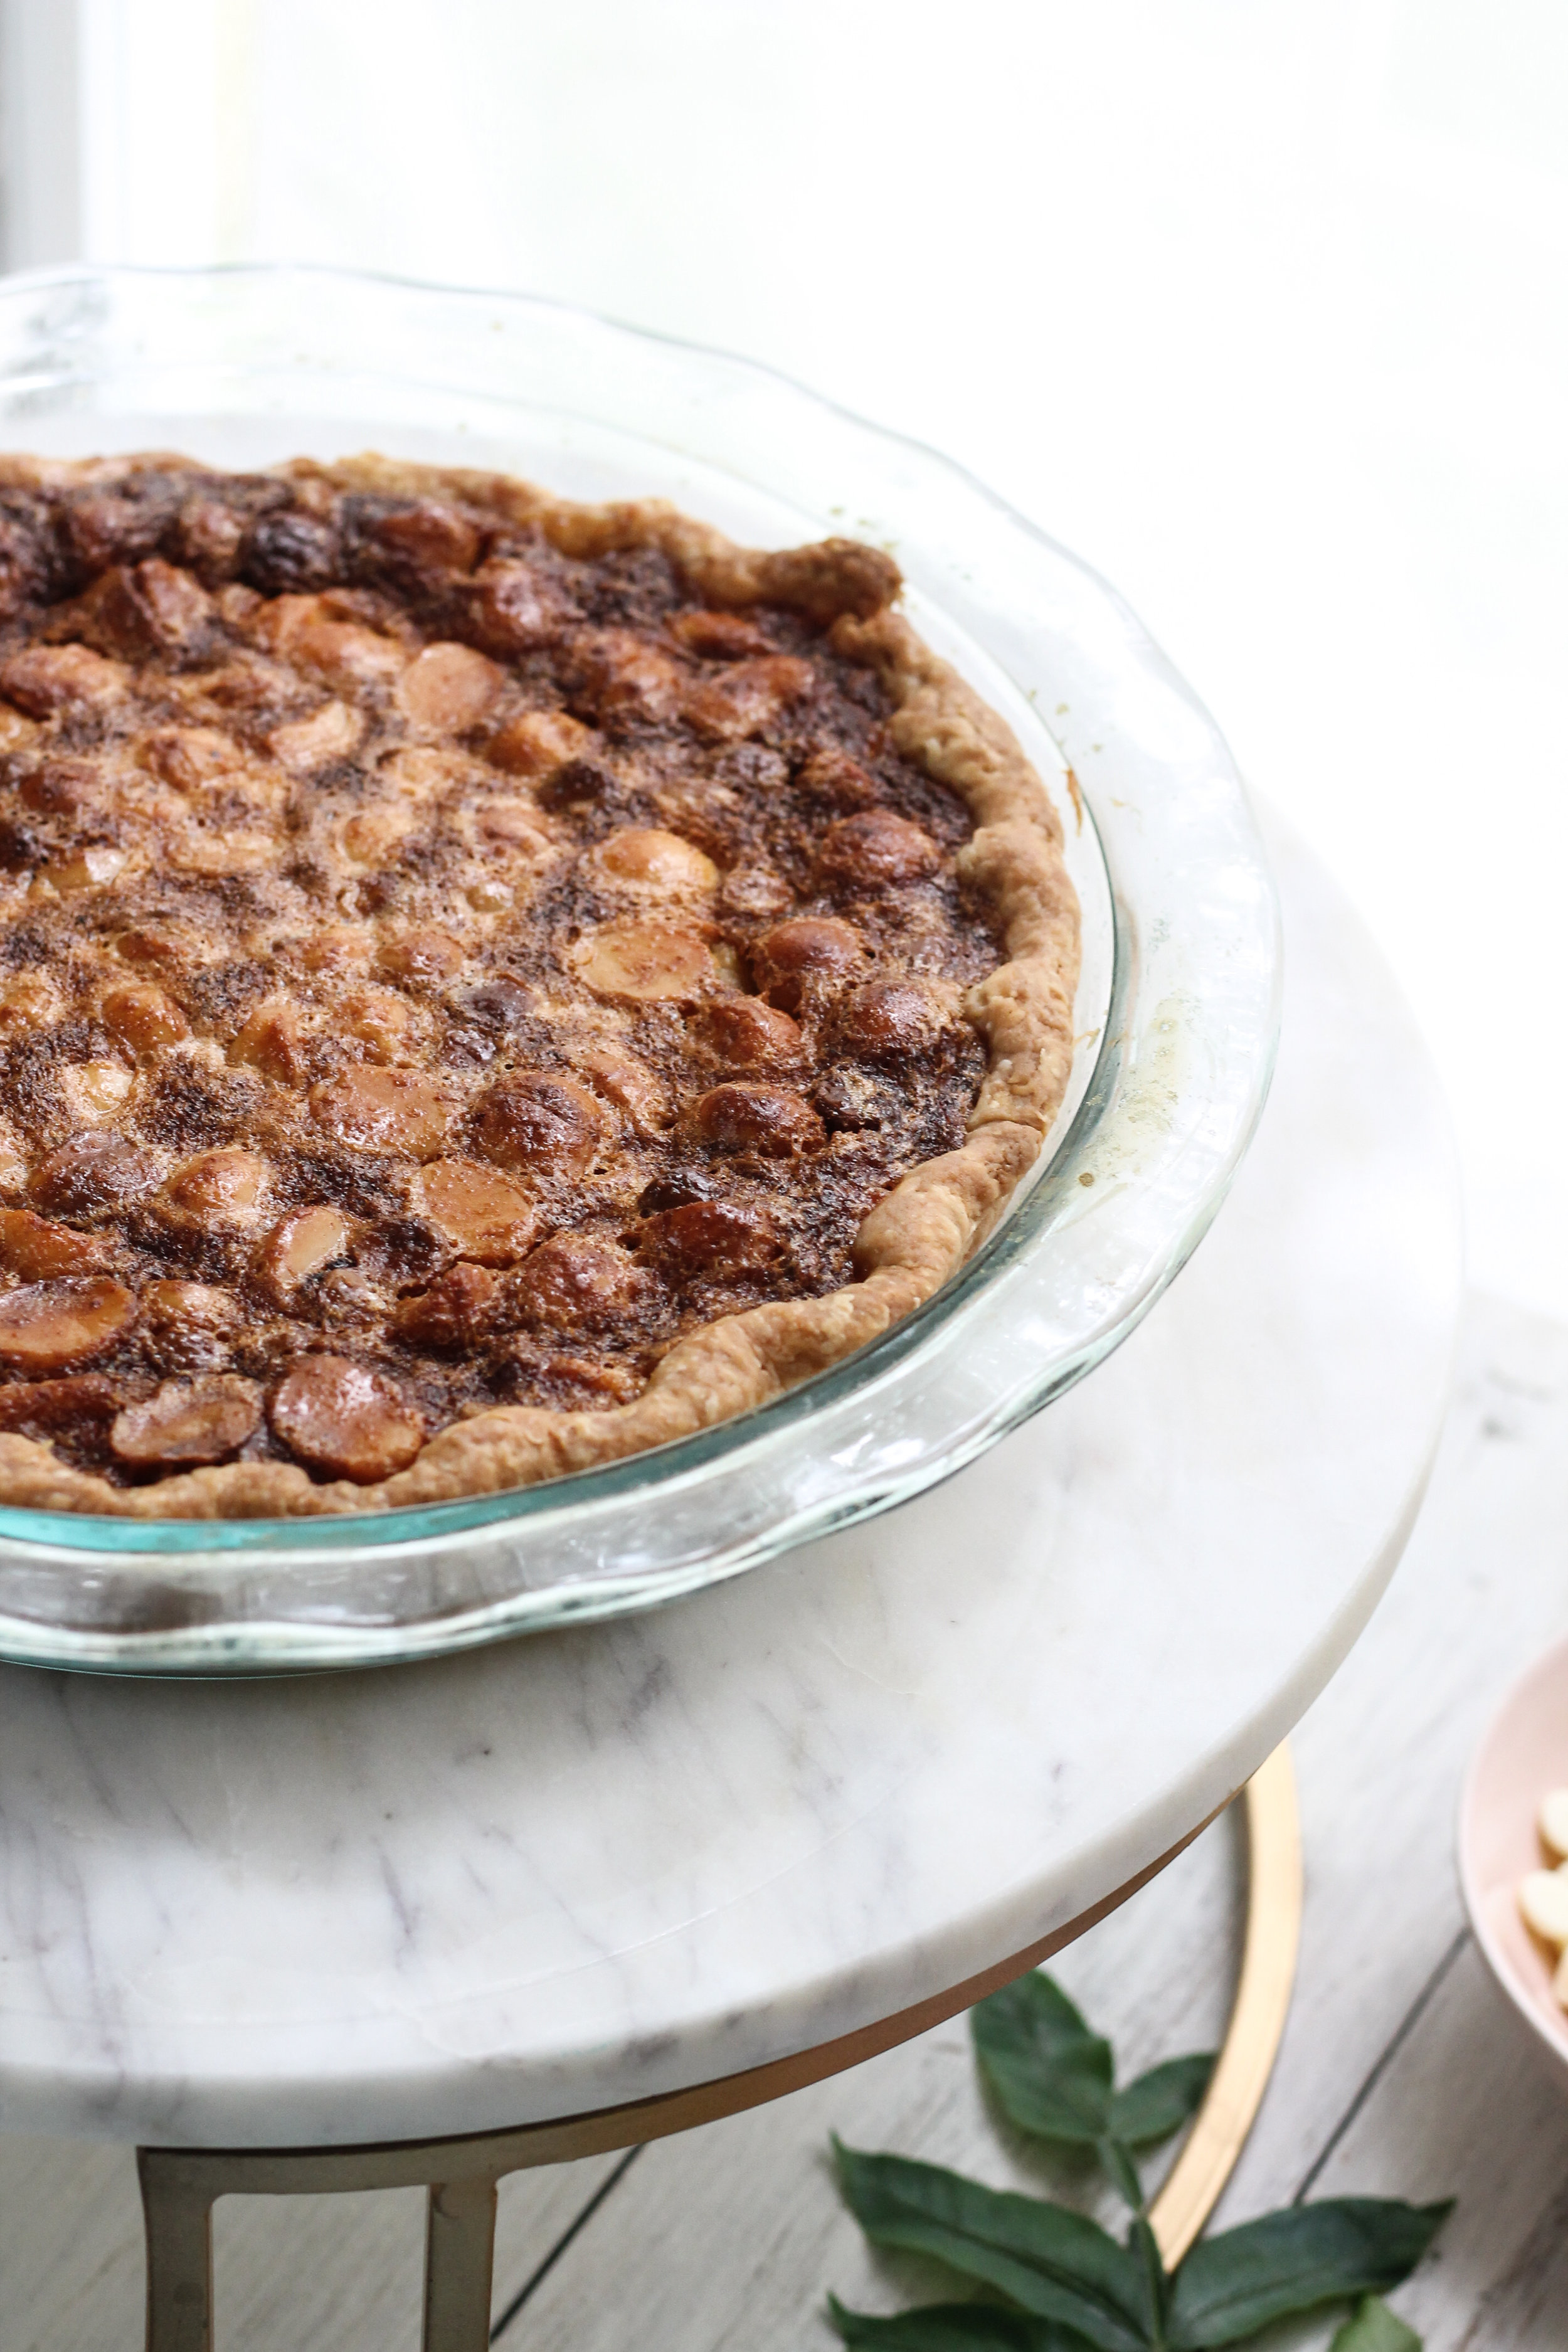 If you thought white chocolate macadamia nut cookies were good, then this pie will be a dream come true!  All the charms of my favorite cookie, enveloped in a rich, caramel-like custard! [ www.pedanticfoodie.com ]